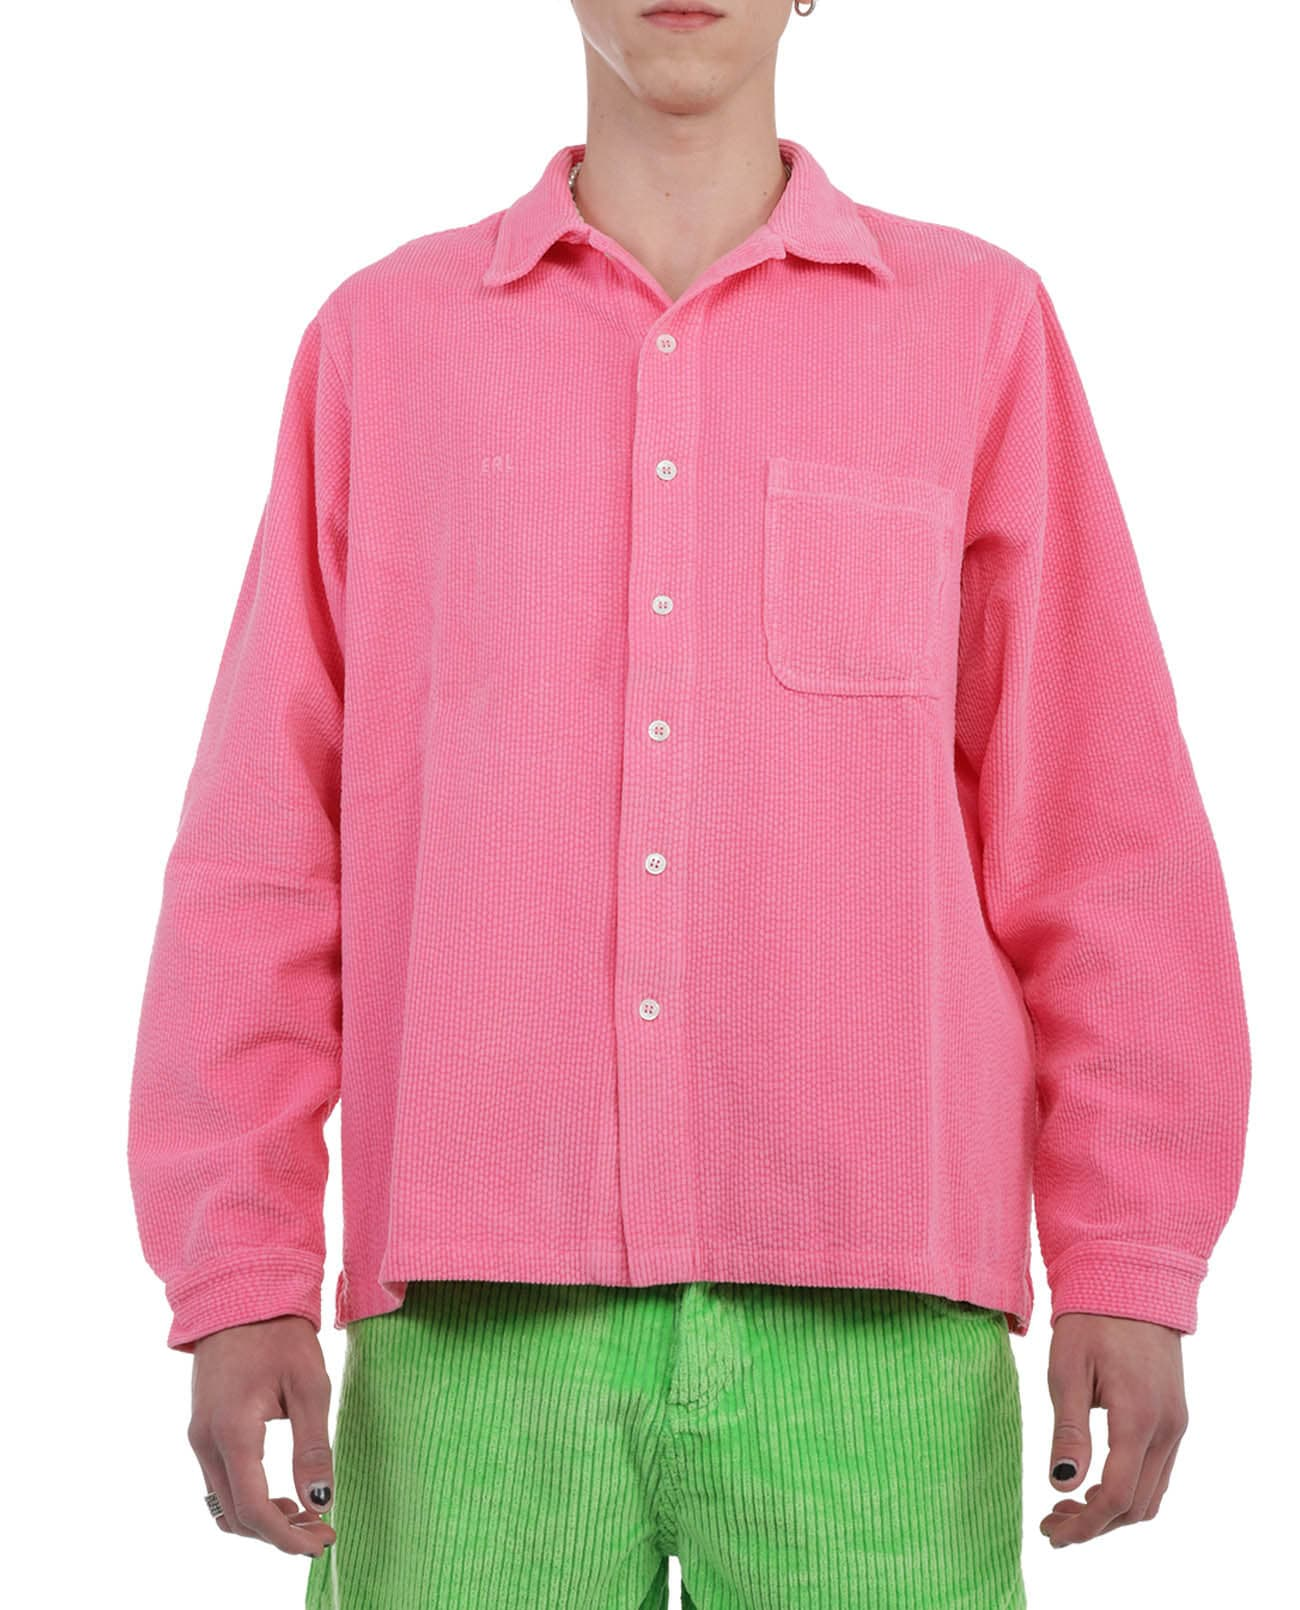 Erl Downs ERL PINK CORD SHIRT